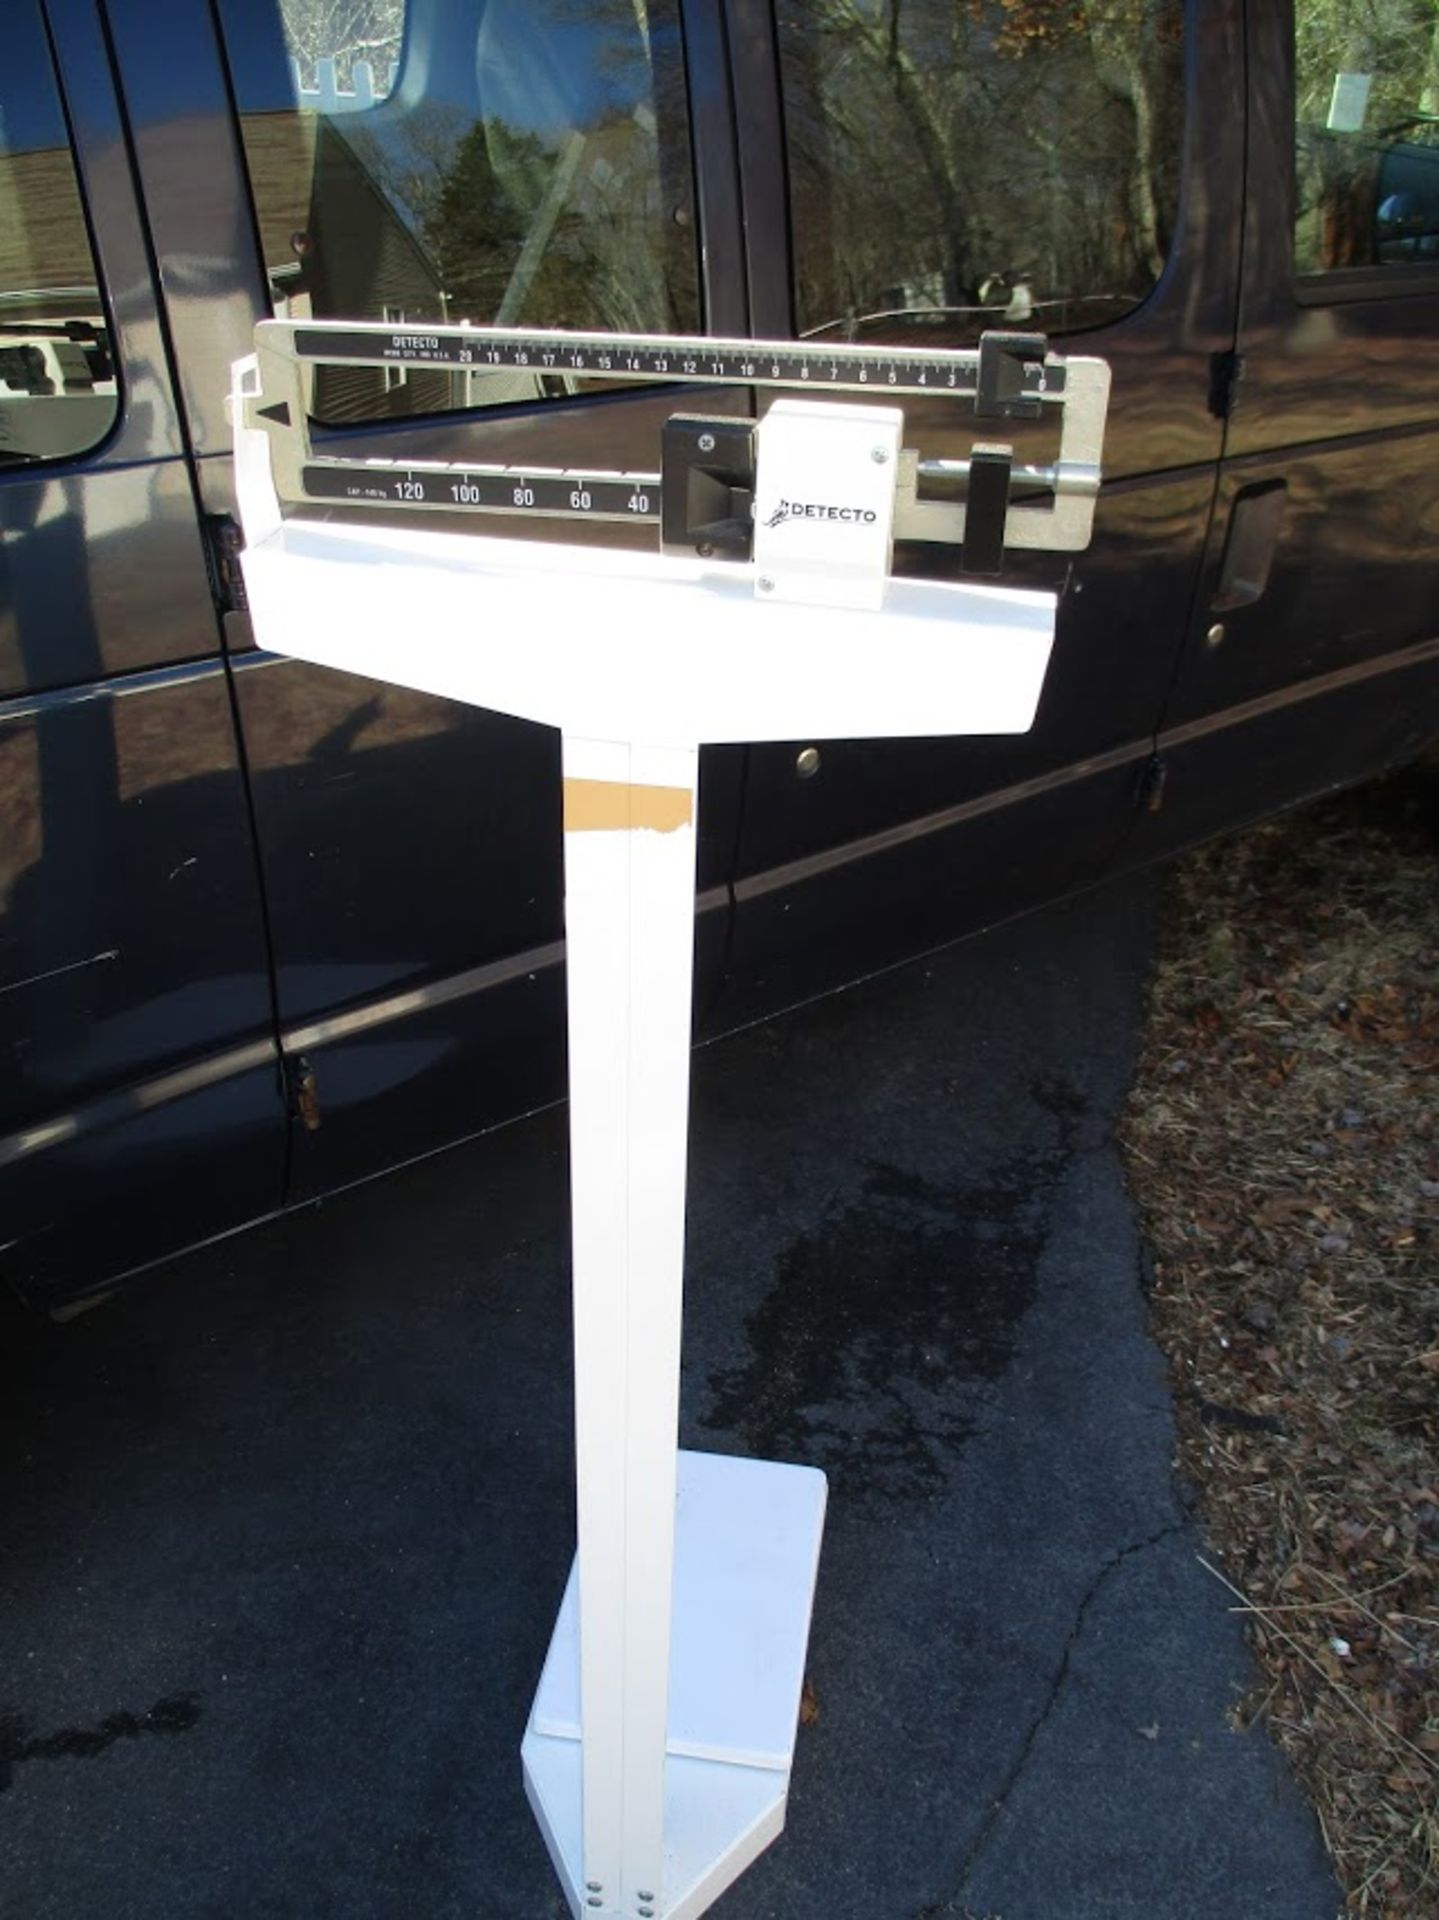 Detecto Precision Medical Scale Capacity 140 KG - Image 3 of 3